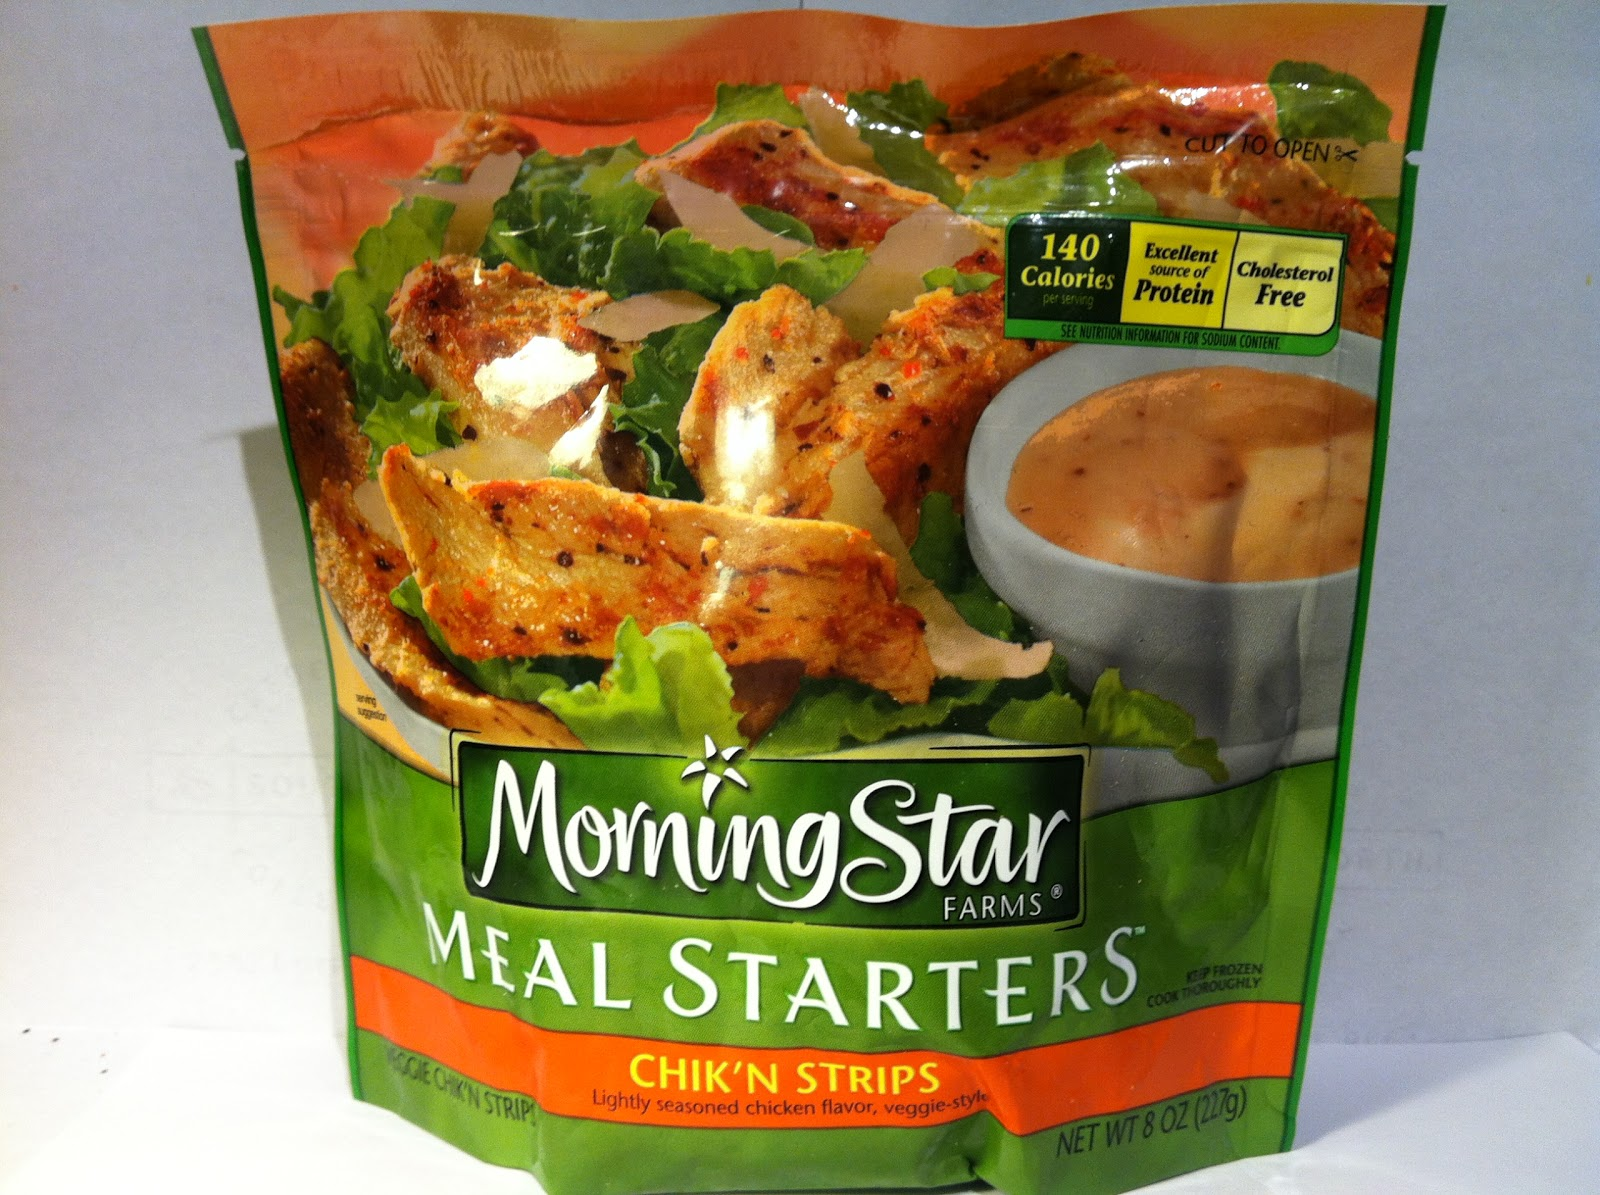 Crazy food dude review morningstar farms chikn strips meal starters review morningstar farms chikn strips meal starters forumfinder Image collections